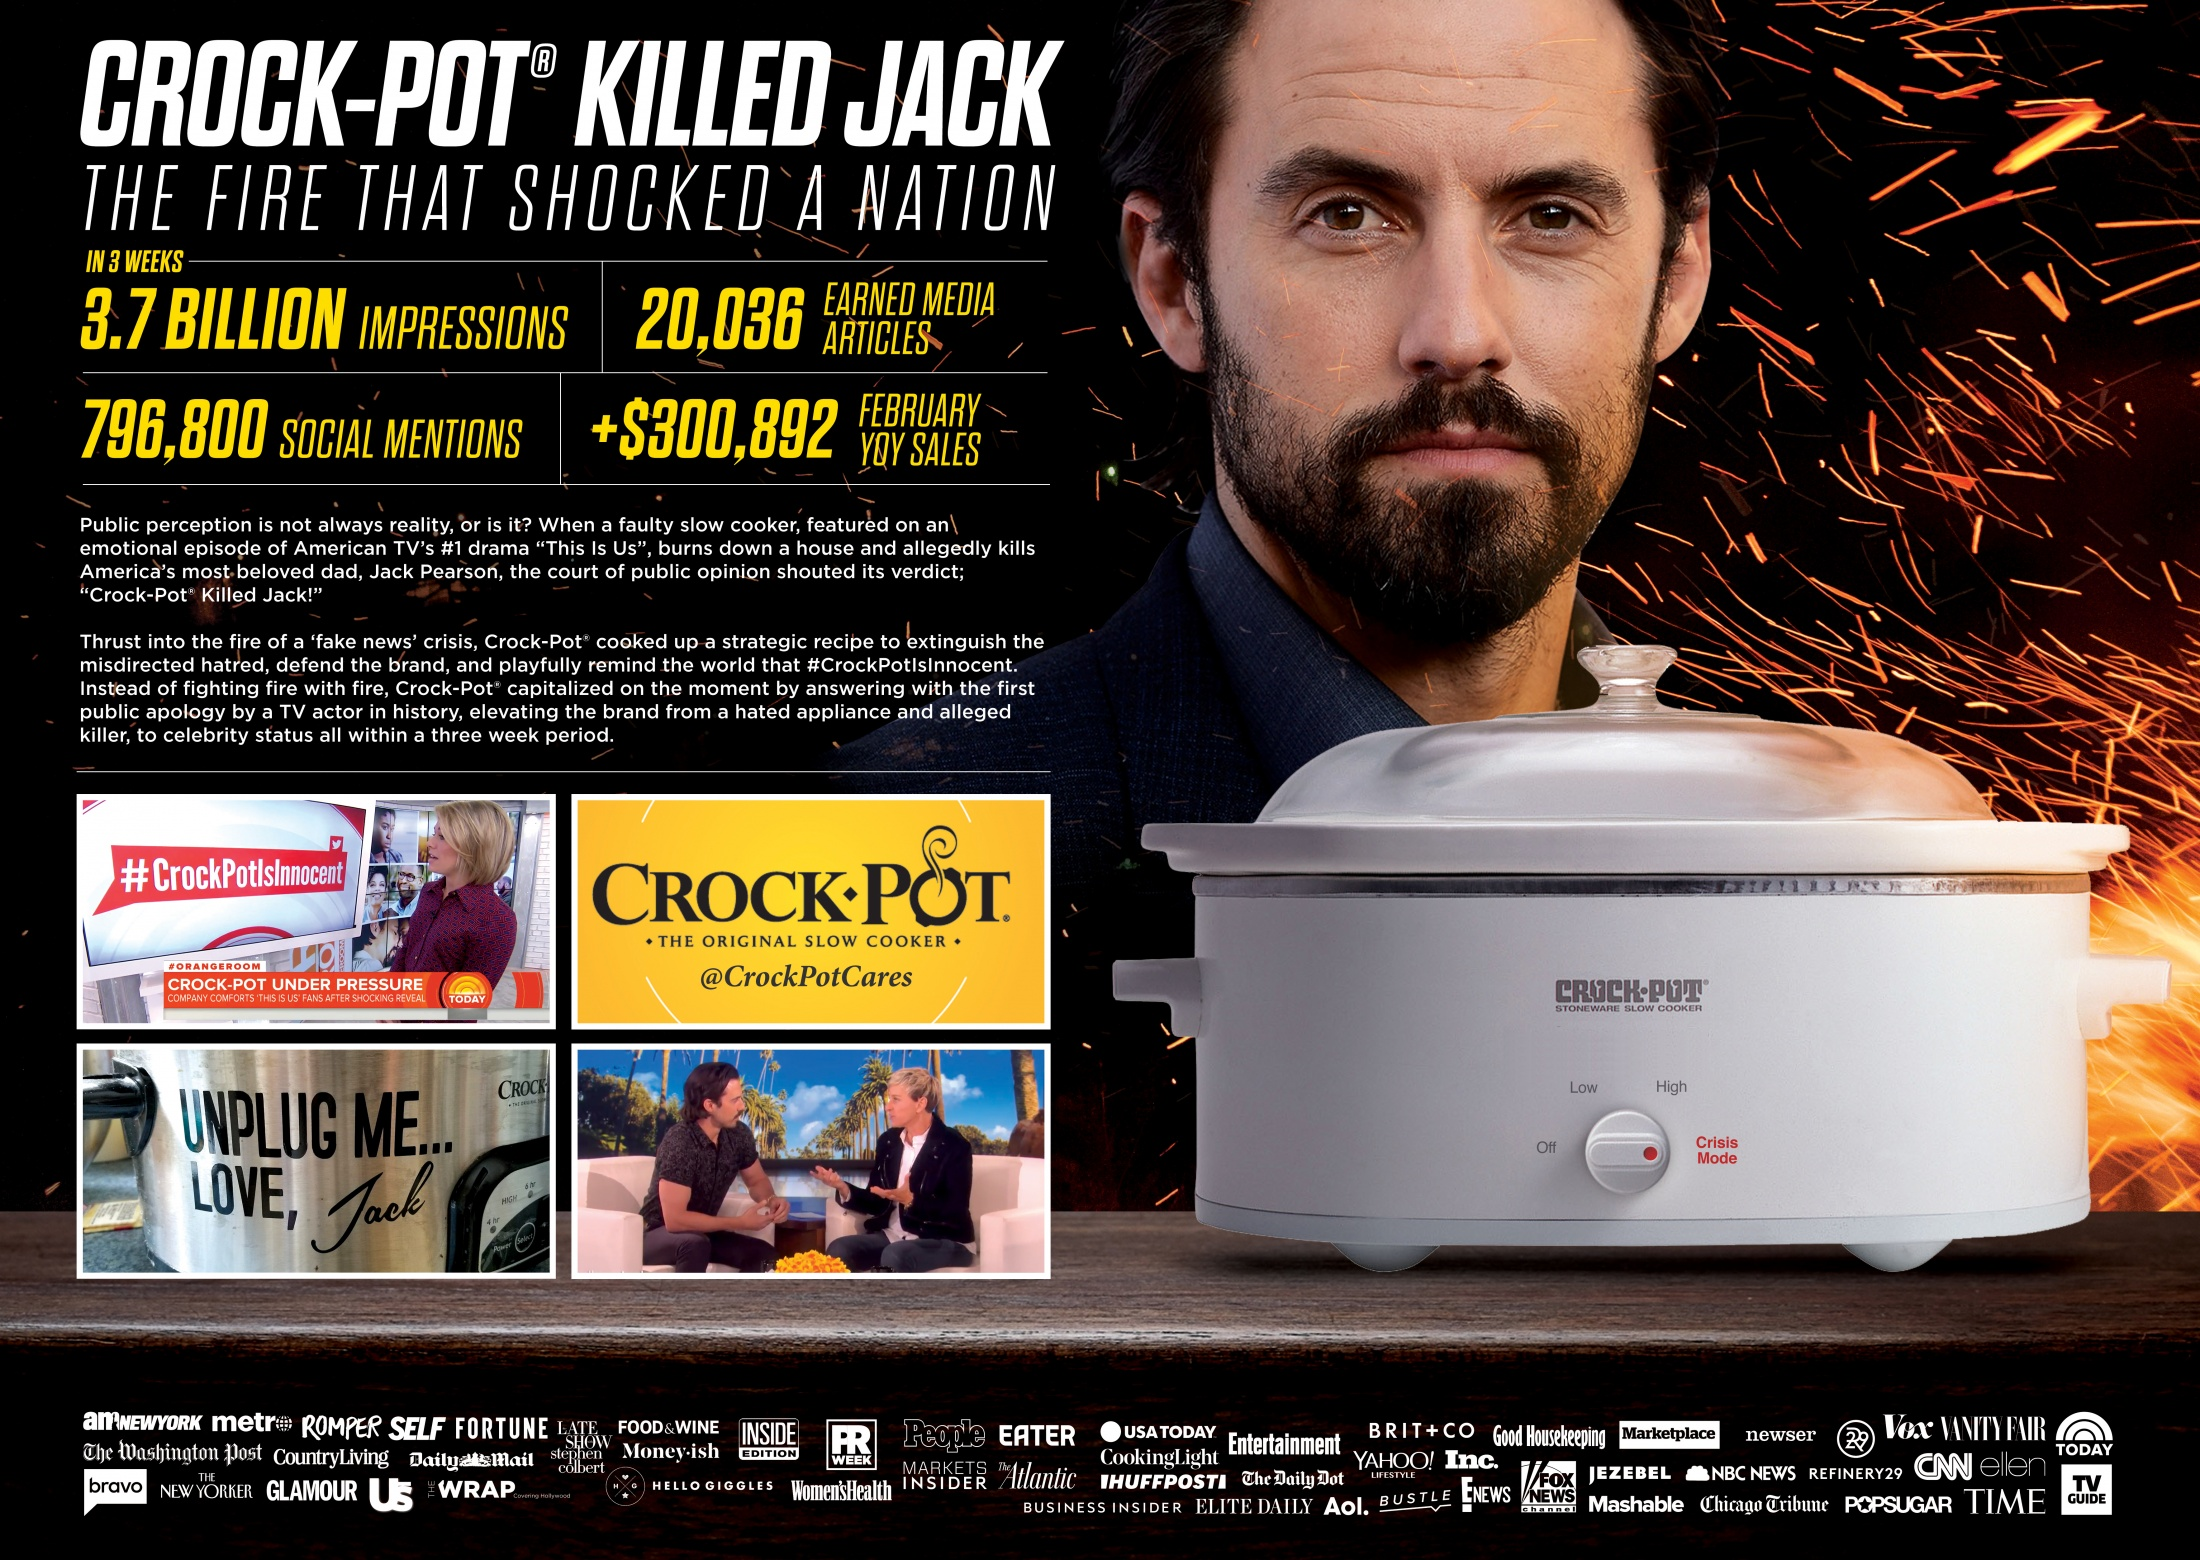 Thumbnail for Crock-Pot Killed Jack